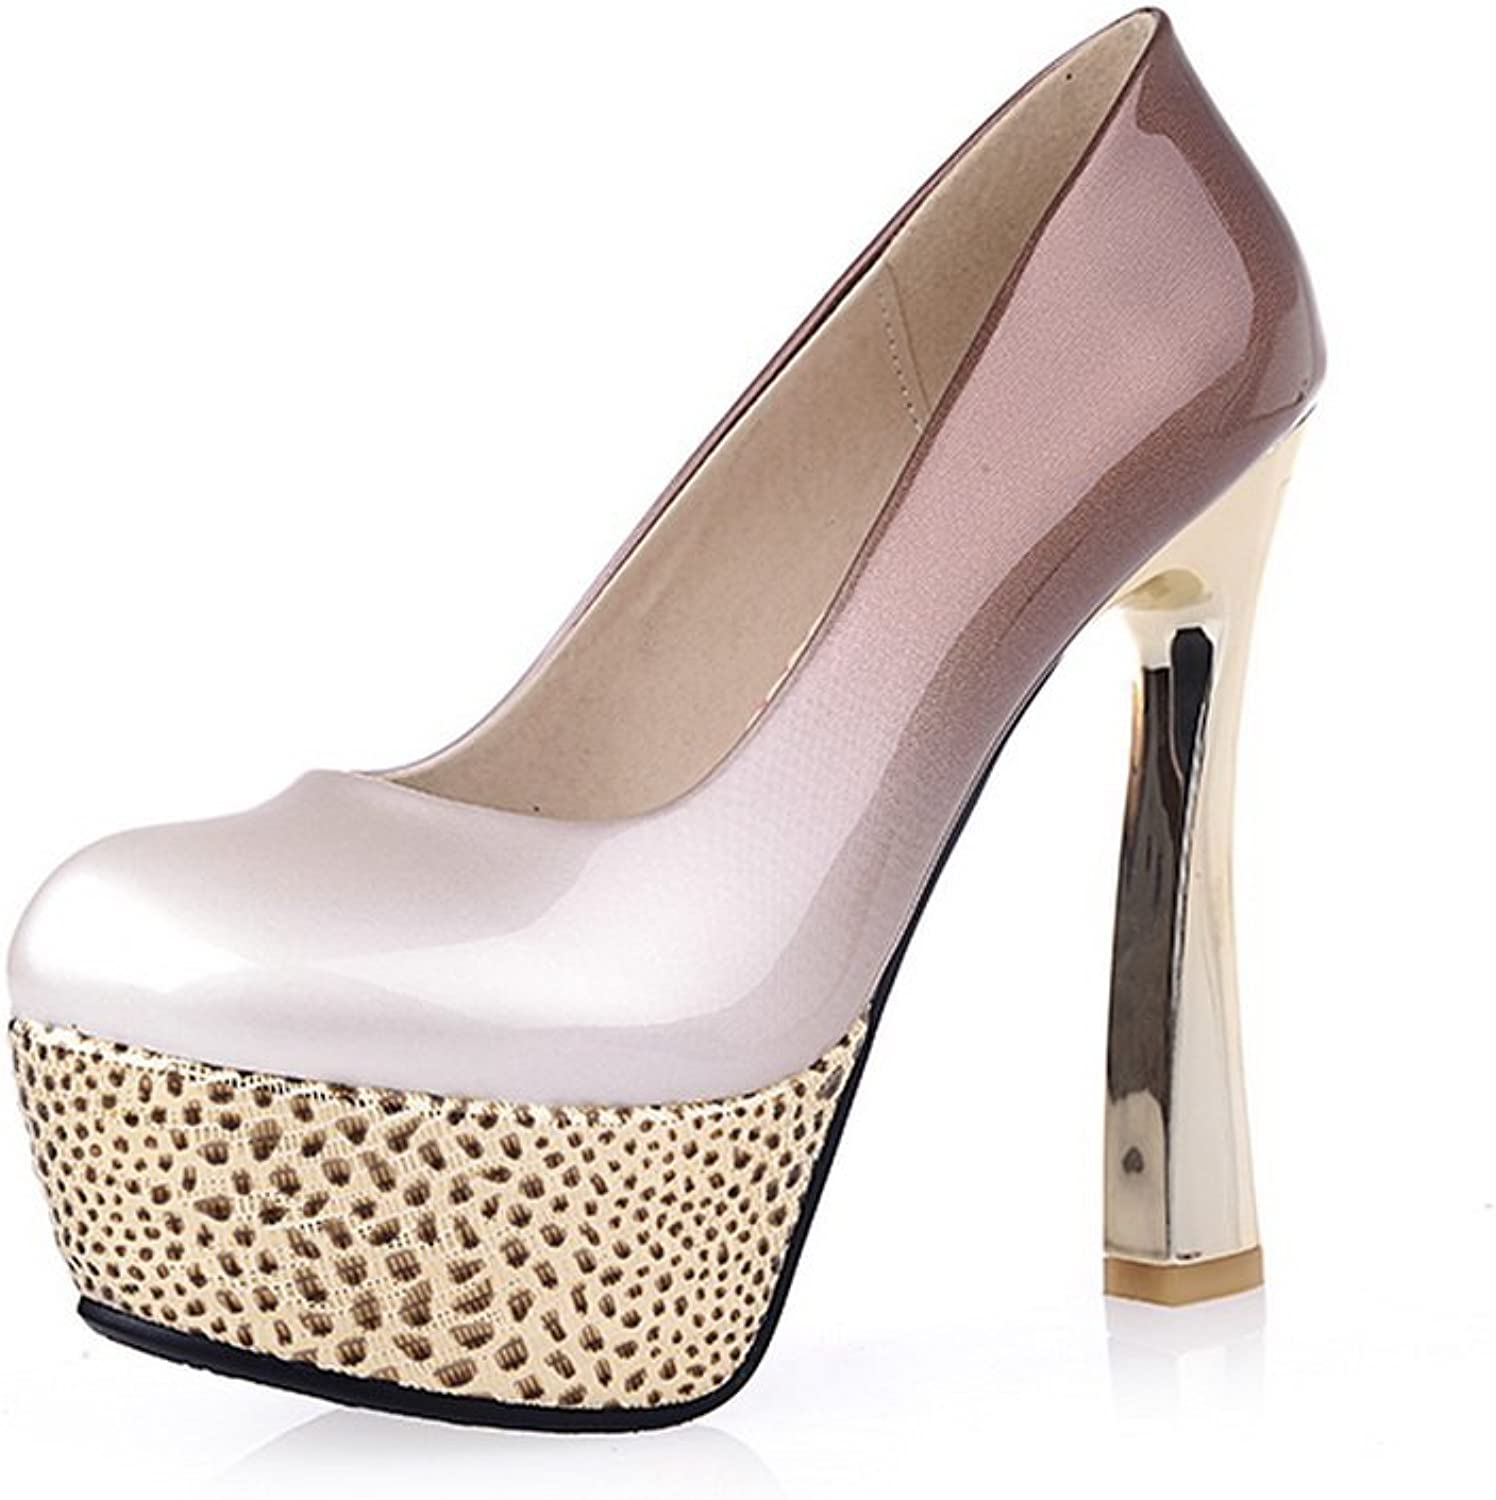 AmoonyFashion Women's Round Closed Toe Pull-on Patent Leather Assorted color High-Heels Pumps-shoes